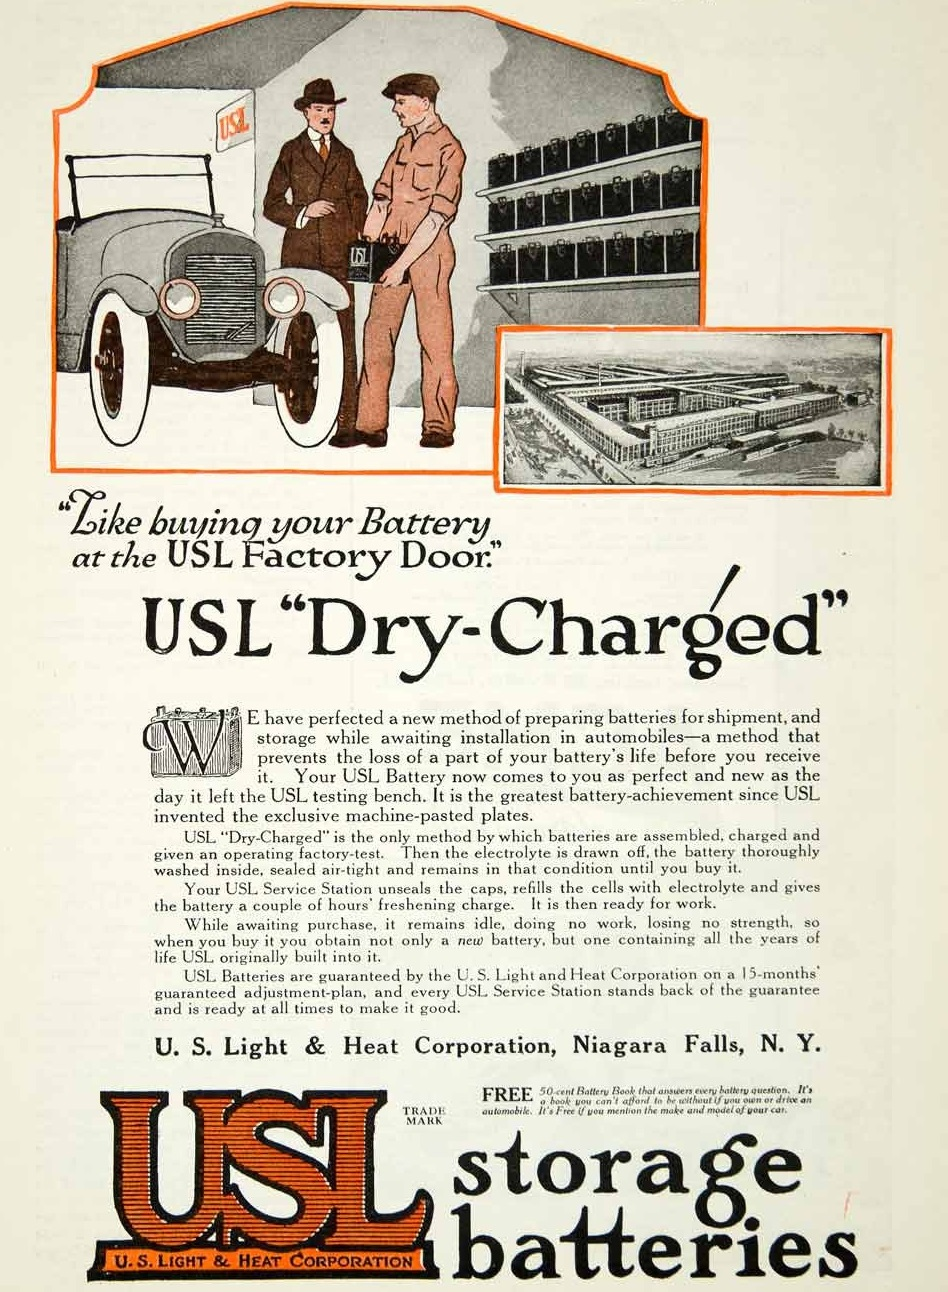 1919 USL Dry Storage Batteries